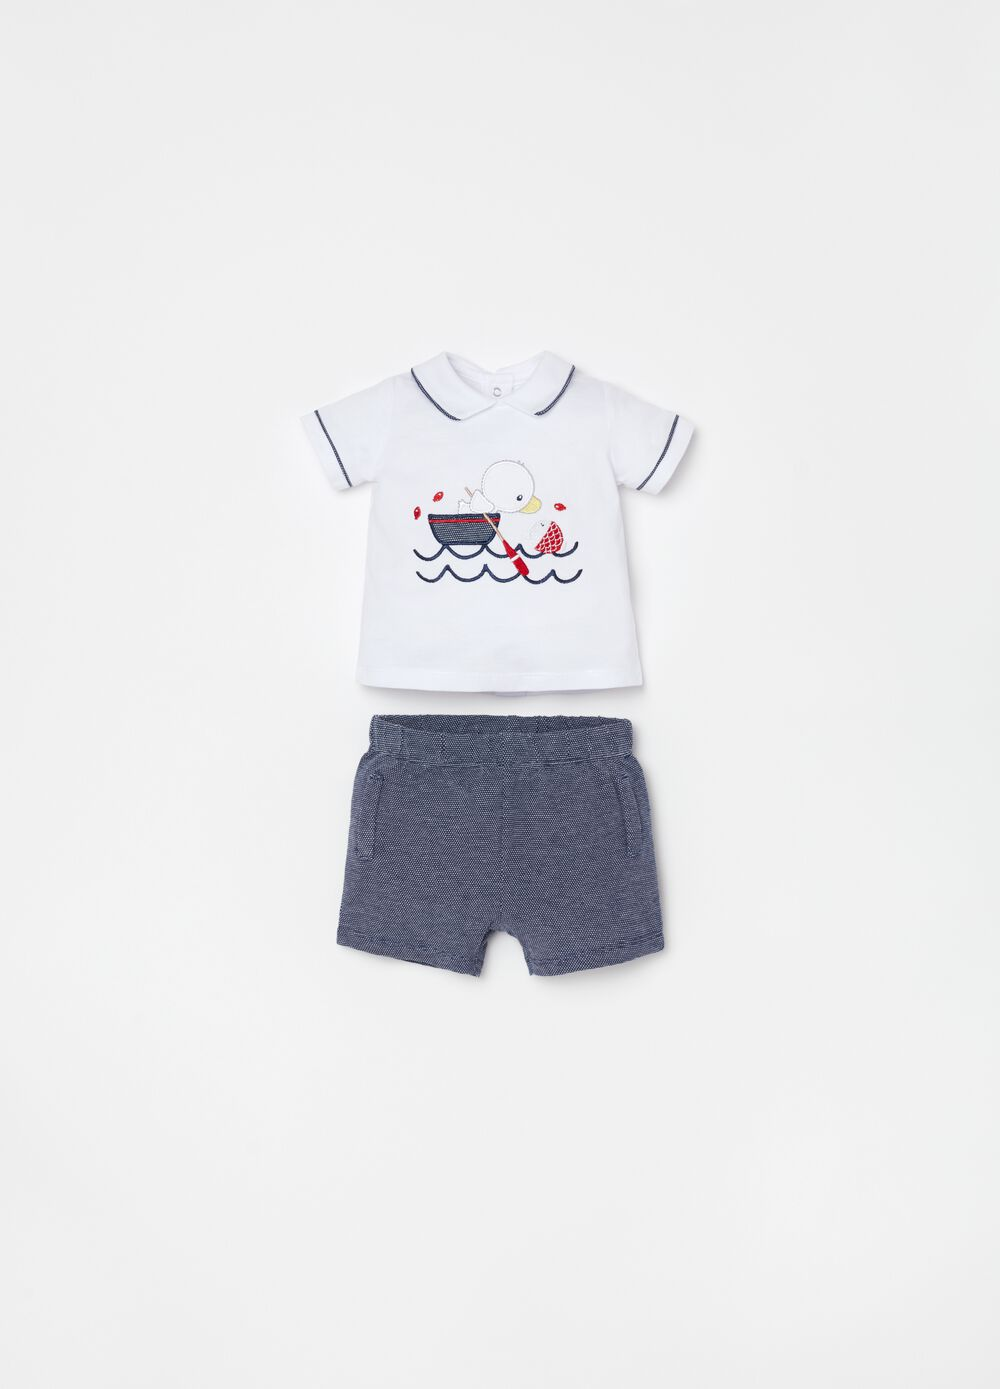 T-shirt and shorts set in 100% organic cotton